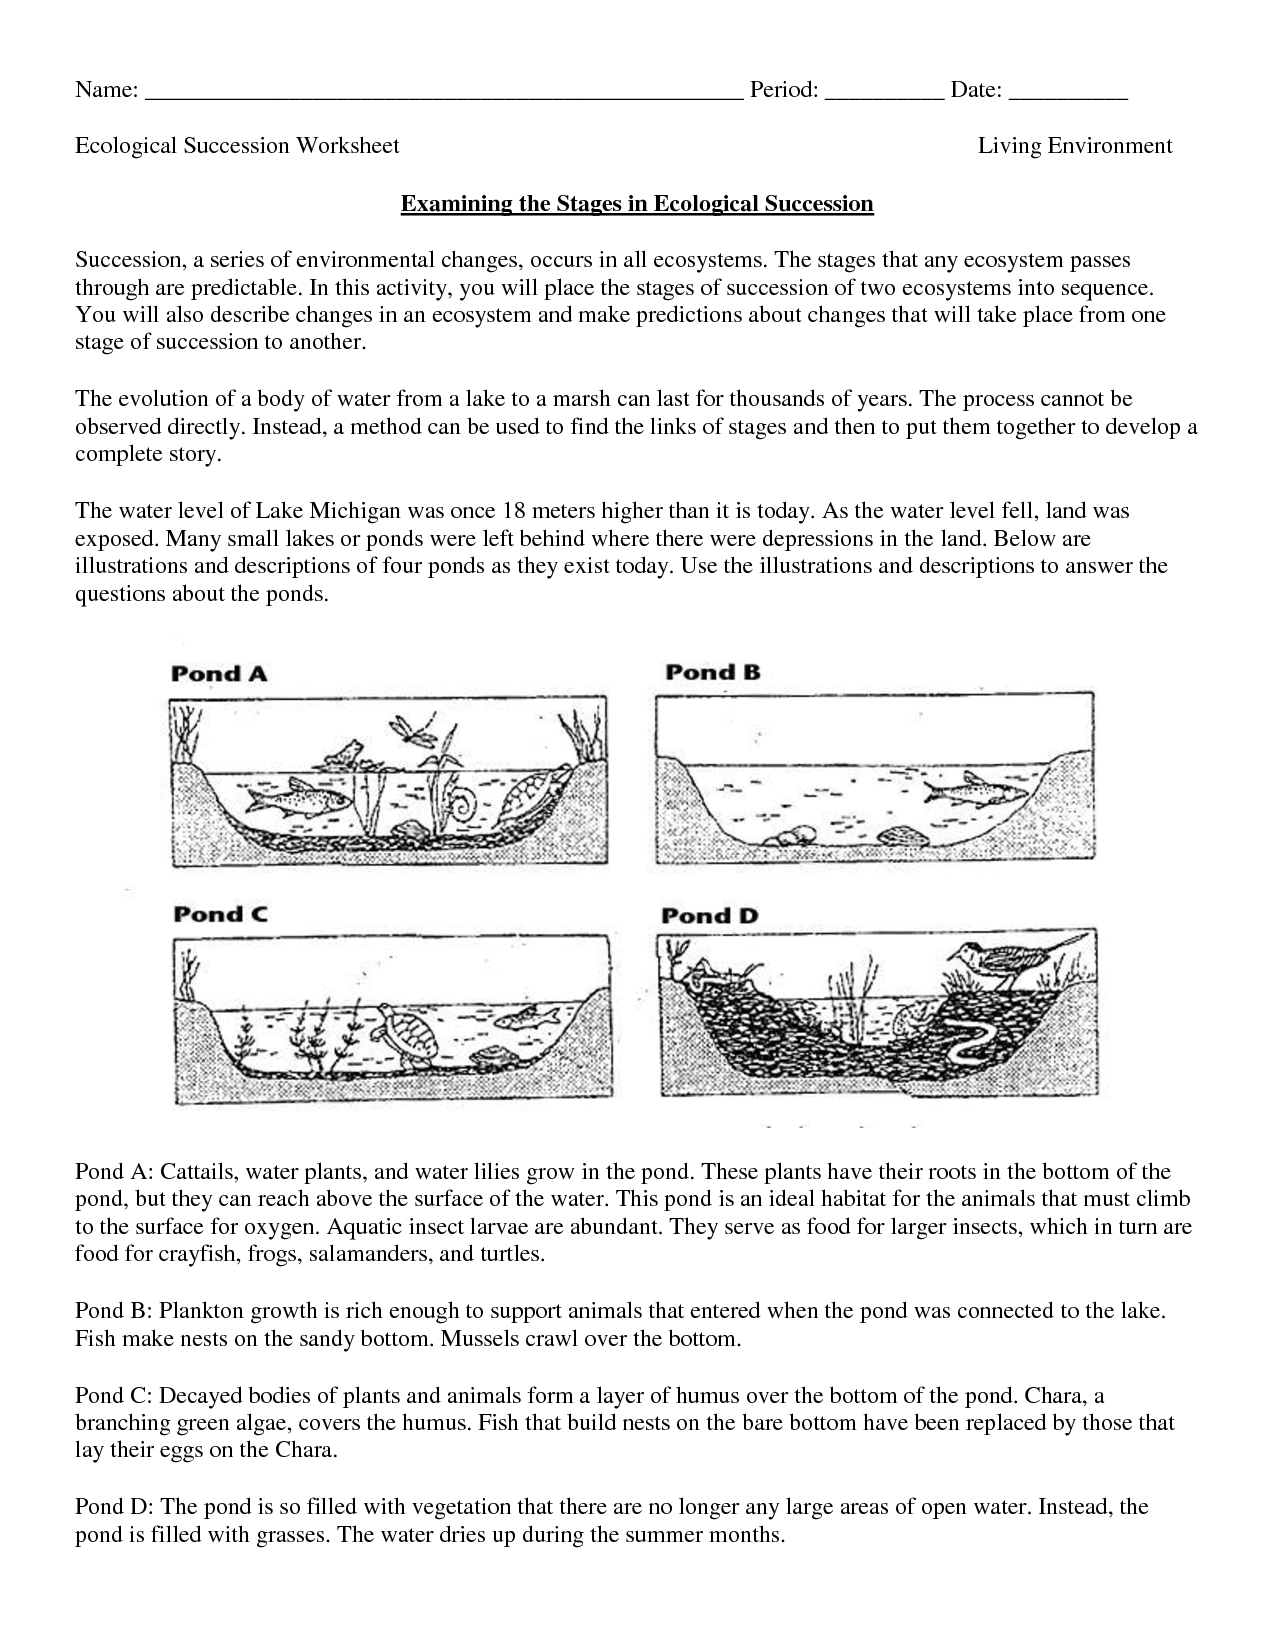 Science Worksheets Ecosystem | Biology Worksheet - Get Now Doc - Free Printable Biology Worksheets For High School